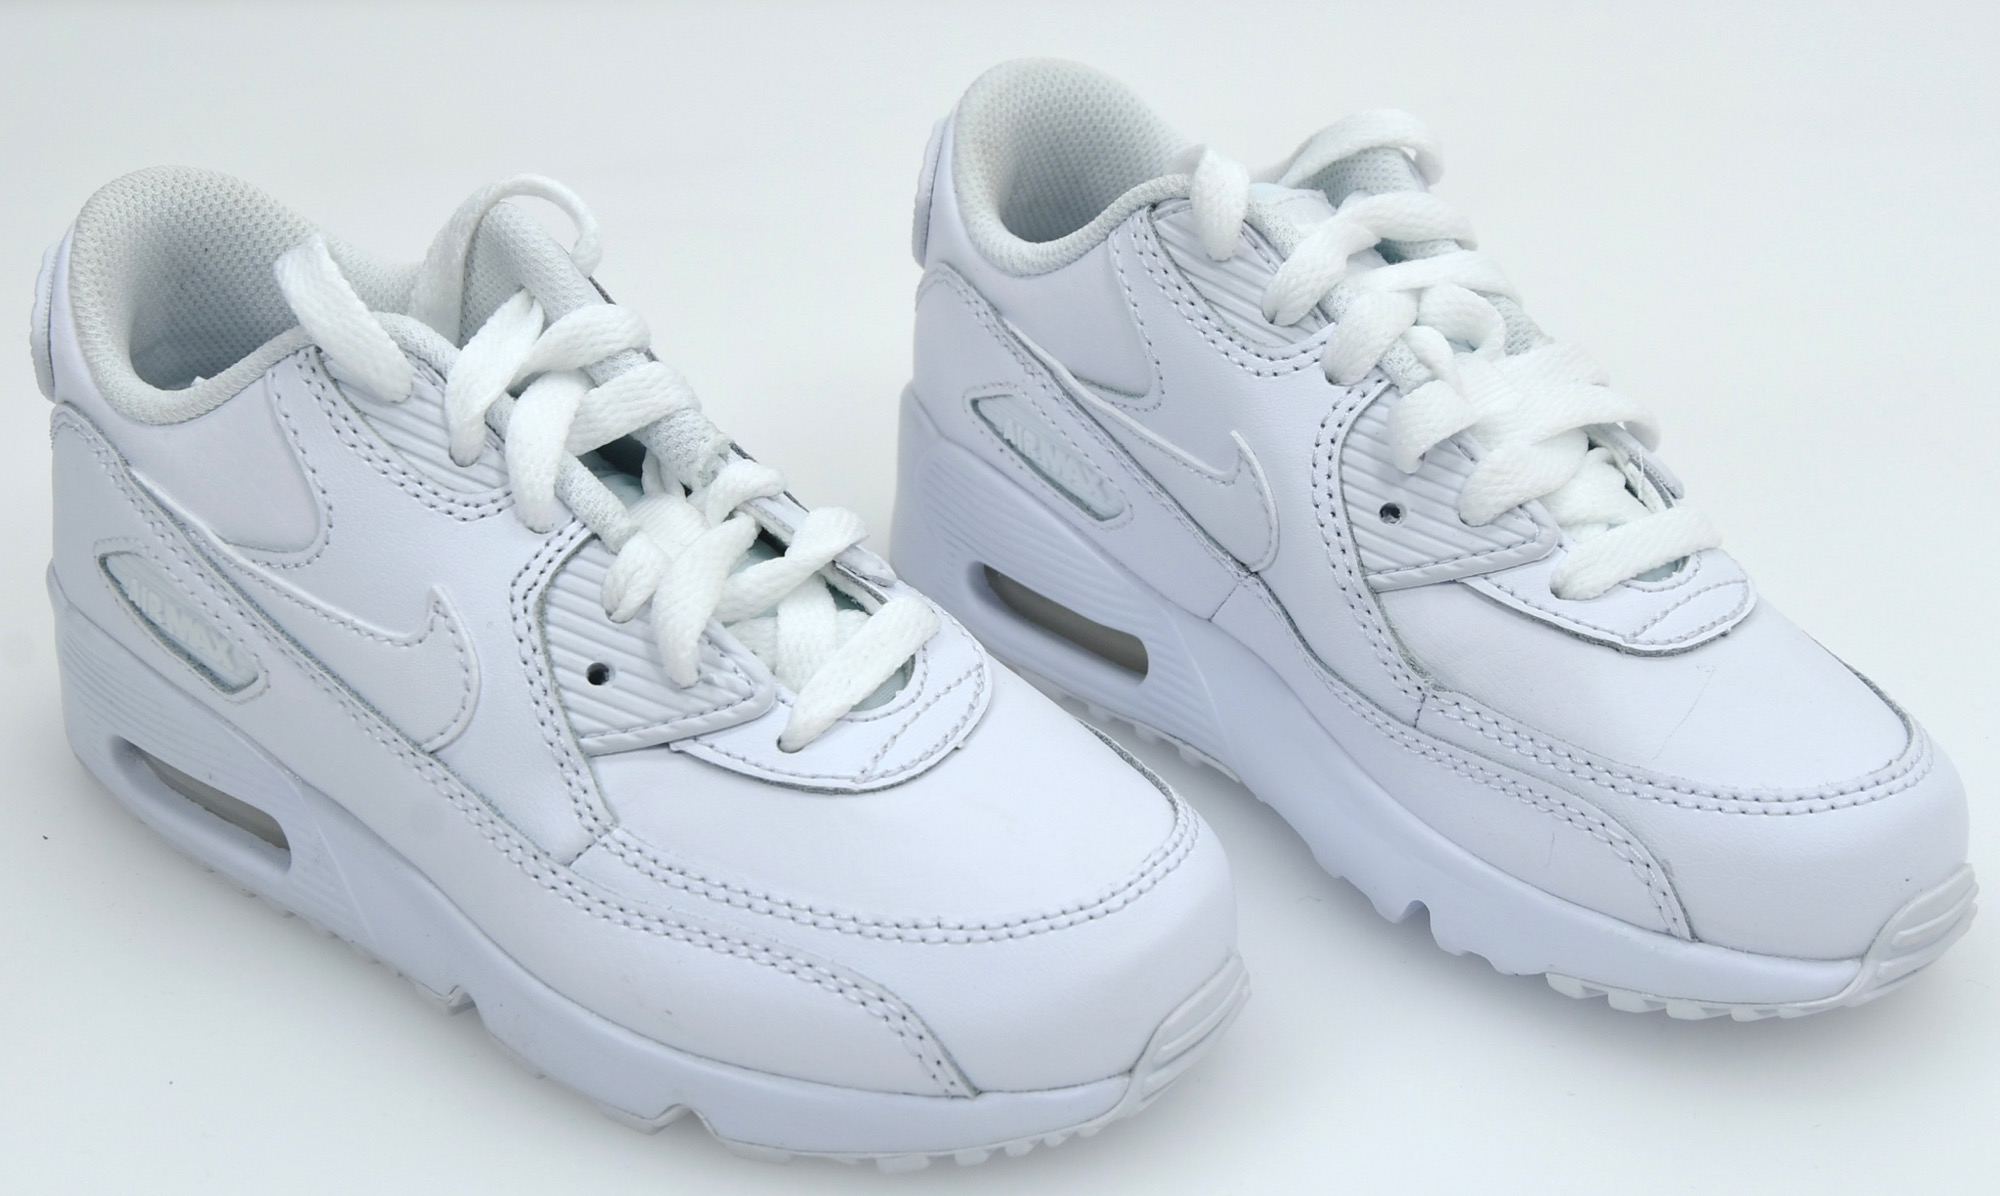 new arrival 23ac3 498e5 NIKE JUNIOR BOY GIRL SNEAKER SHOES CASUAL 833414 - 833416 NIKE AIR MAX 90  LTR